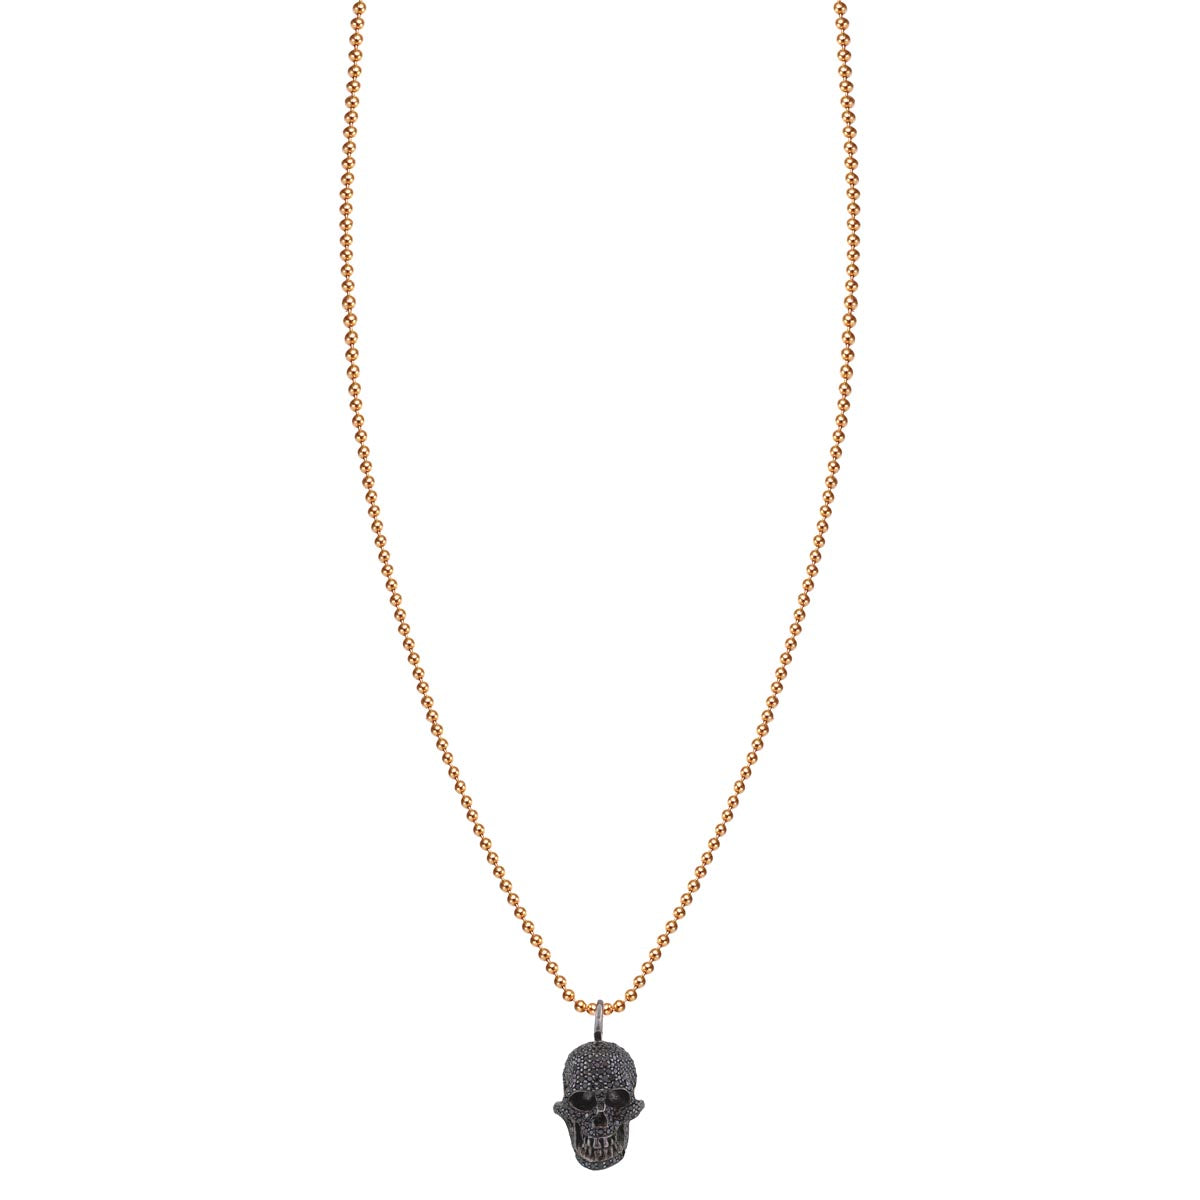 Pave Black Gold Diamond Skull Necklace - Phoenix Roze